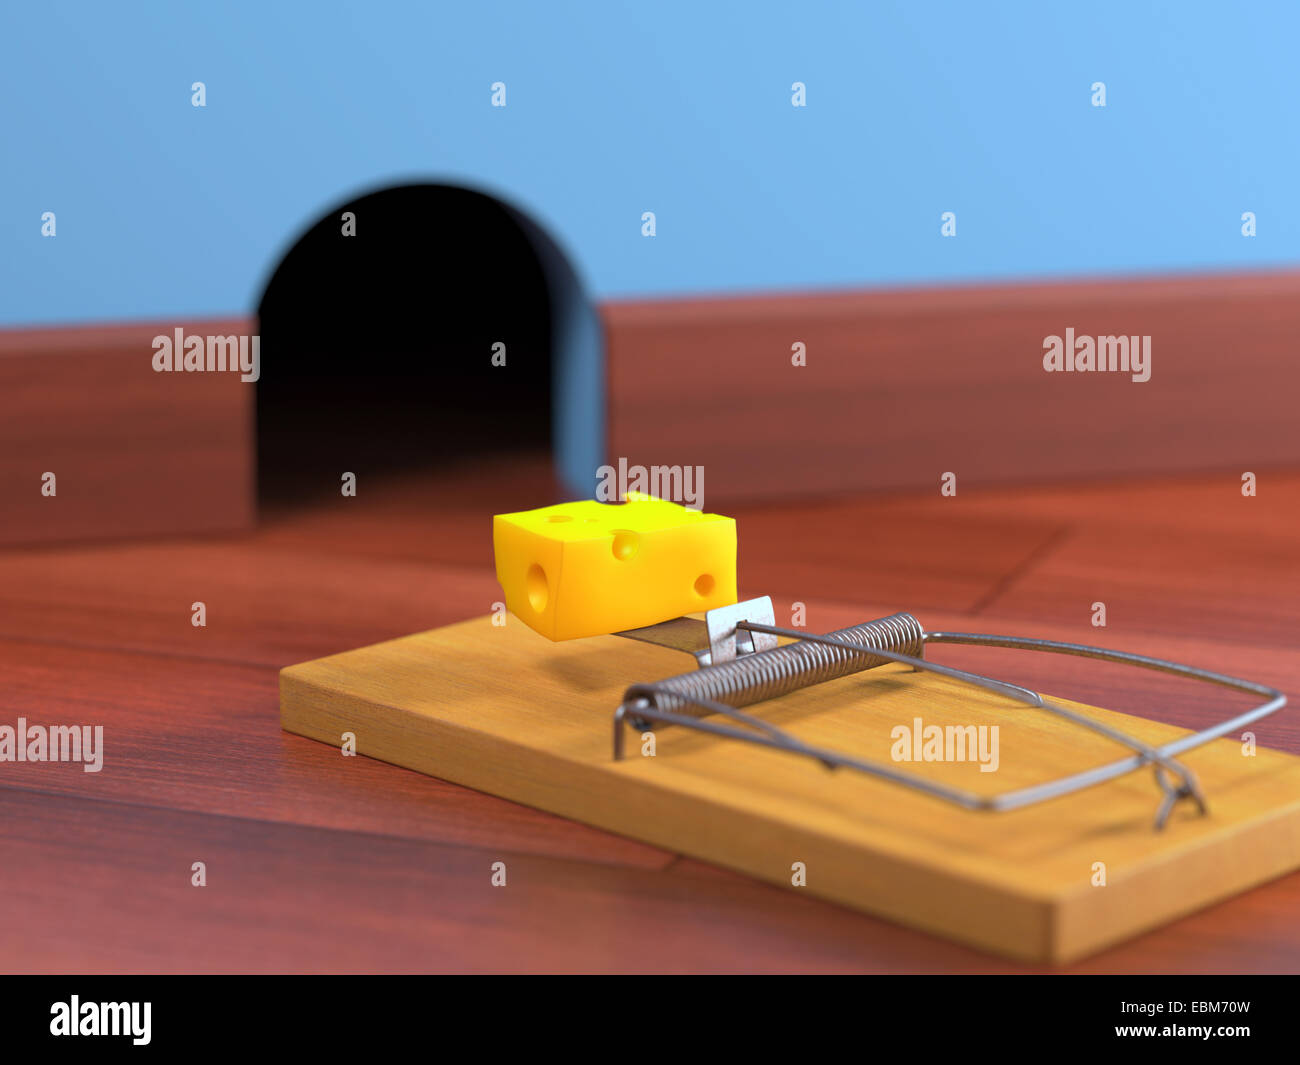 Mousetrap with cheese on a wooden floor. Depth of field in cheese. - Stock Image